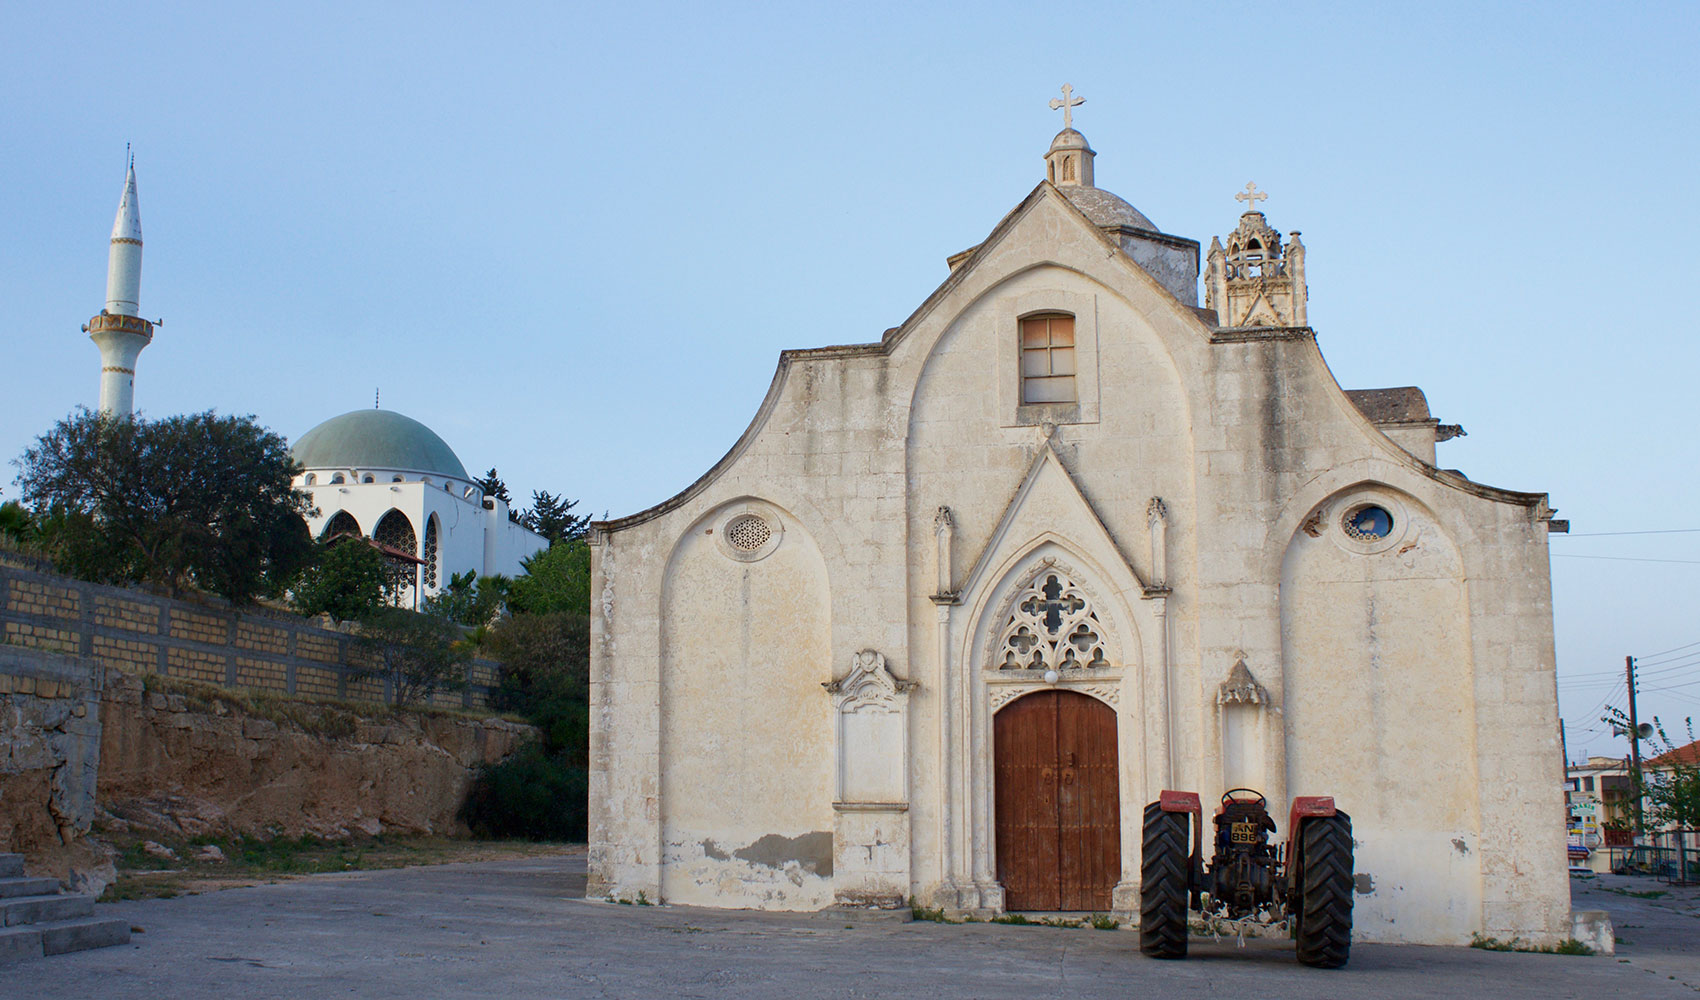 Greek Orthodox church sits near a Muslim mosque in the town of Rizokarpaso